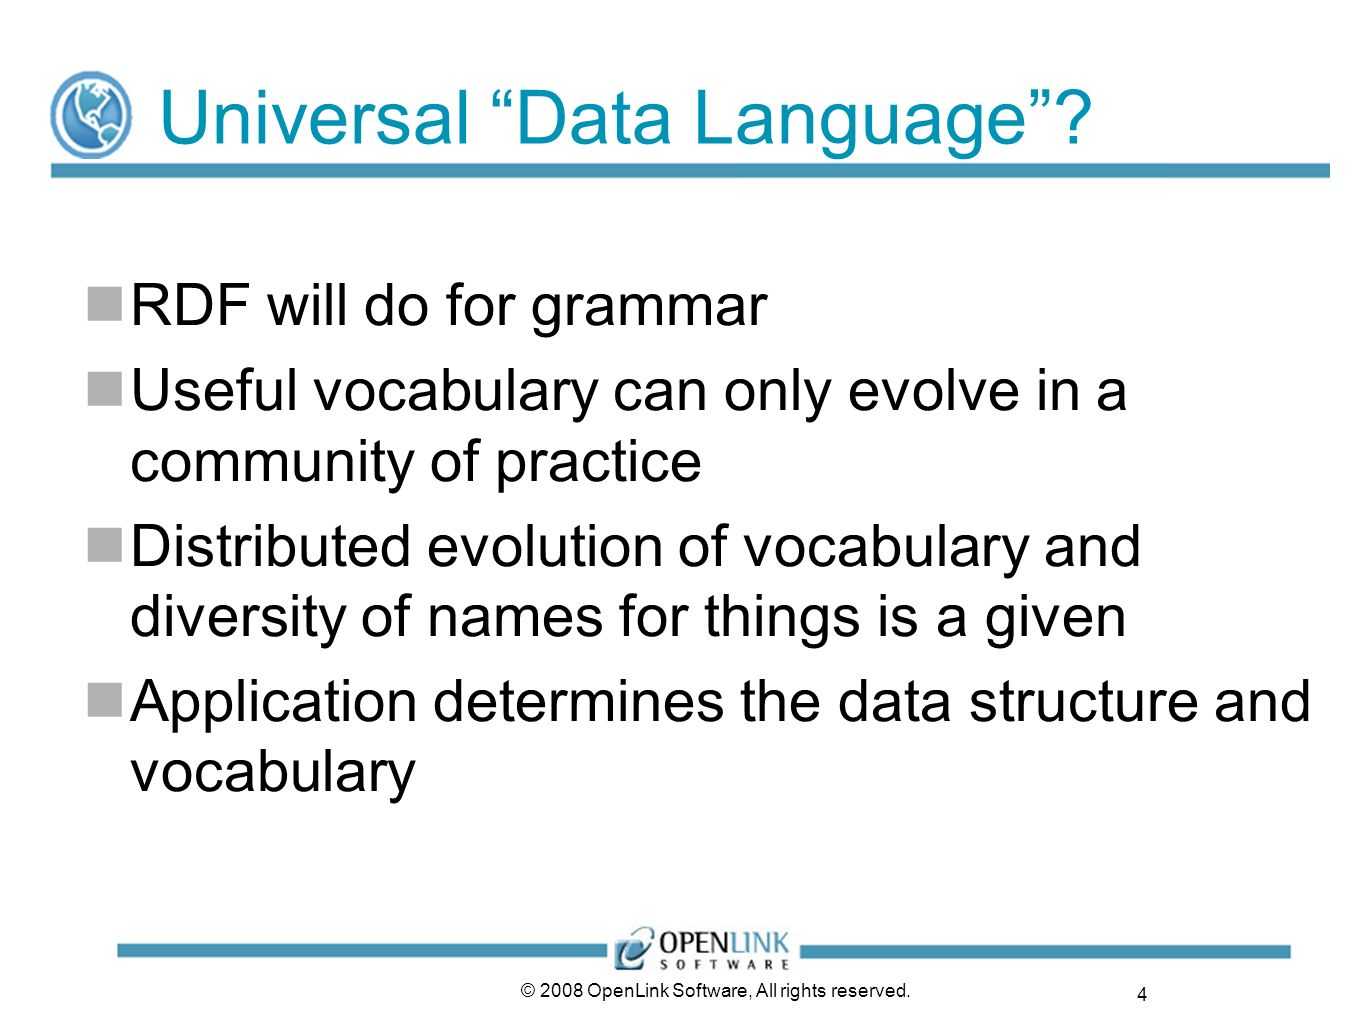 Universal Data Language